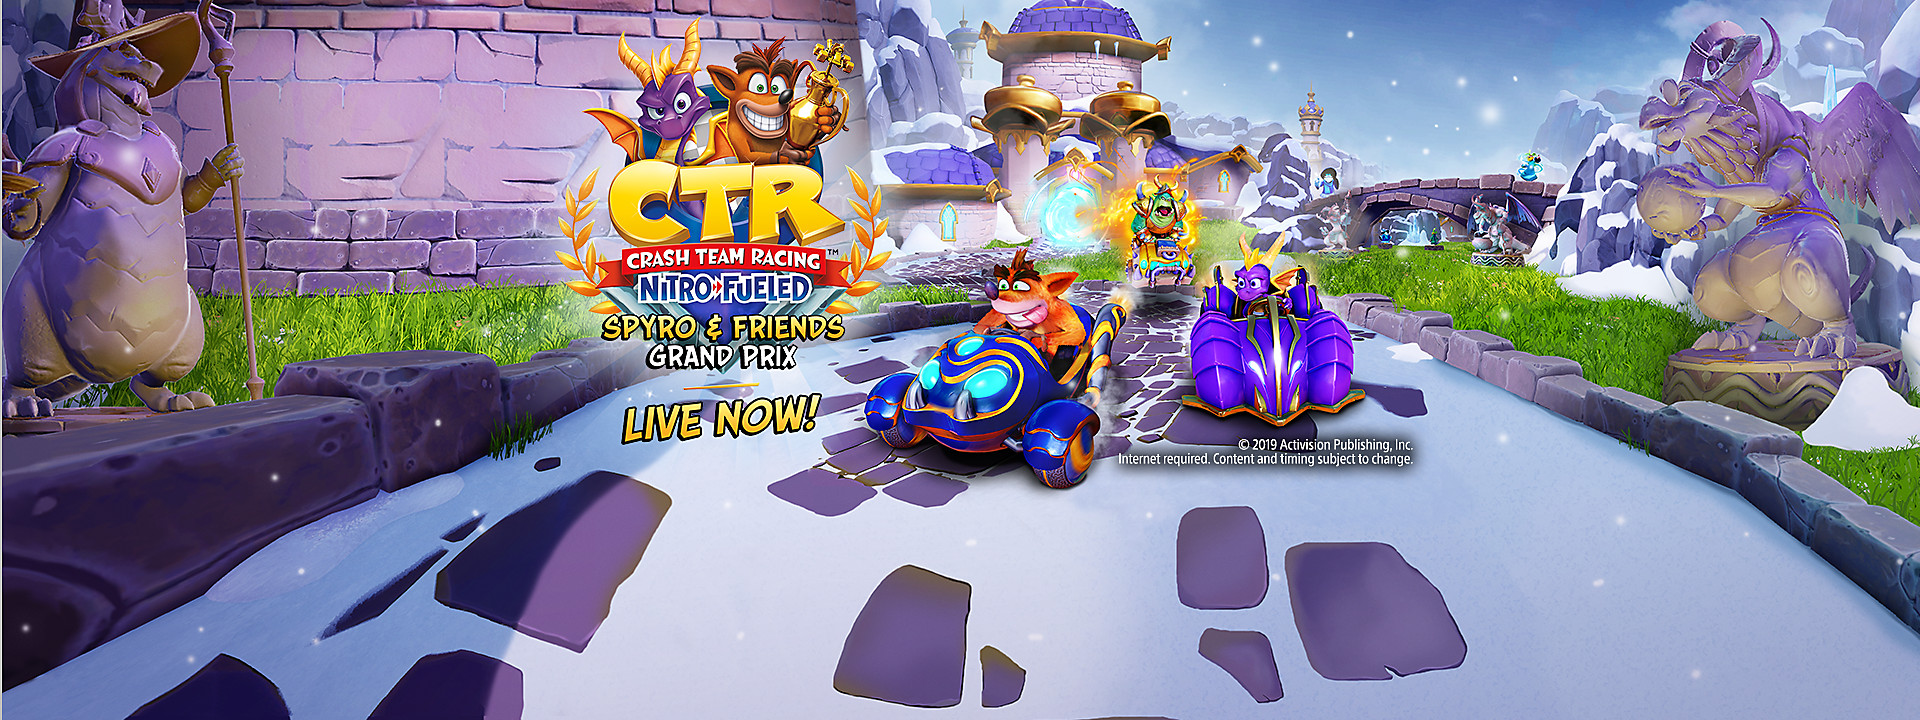 Crash Team Racing Nitro-Fueled - Spyro & Friends Grand Prix Now Available